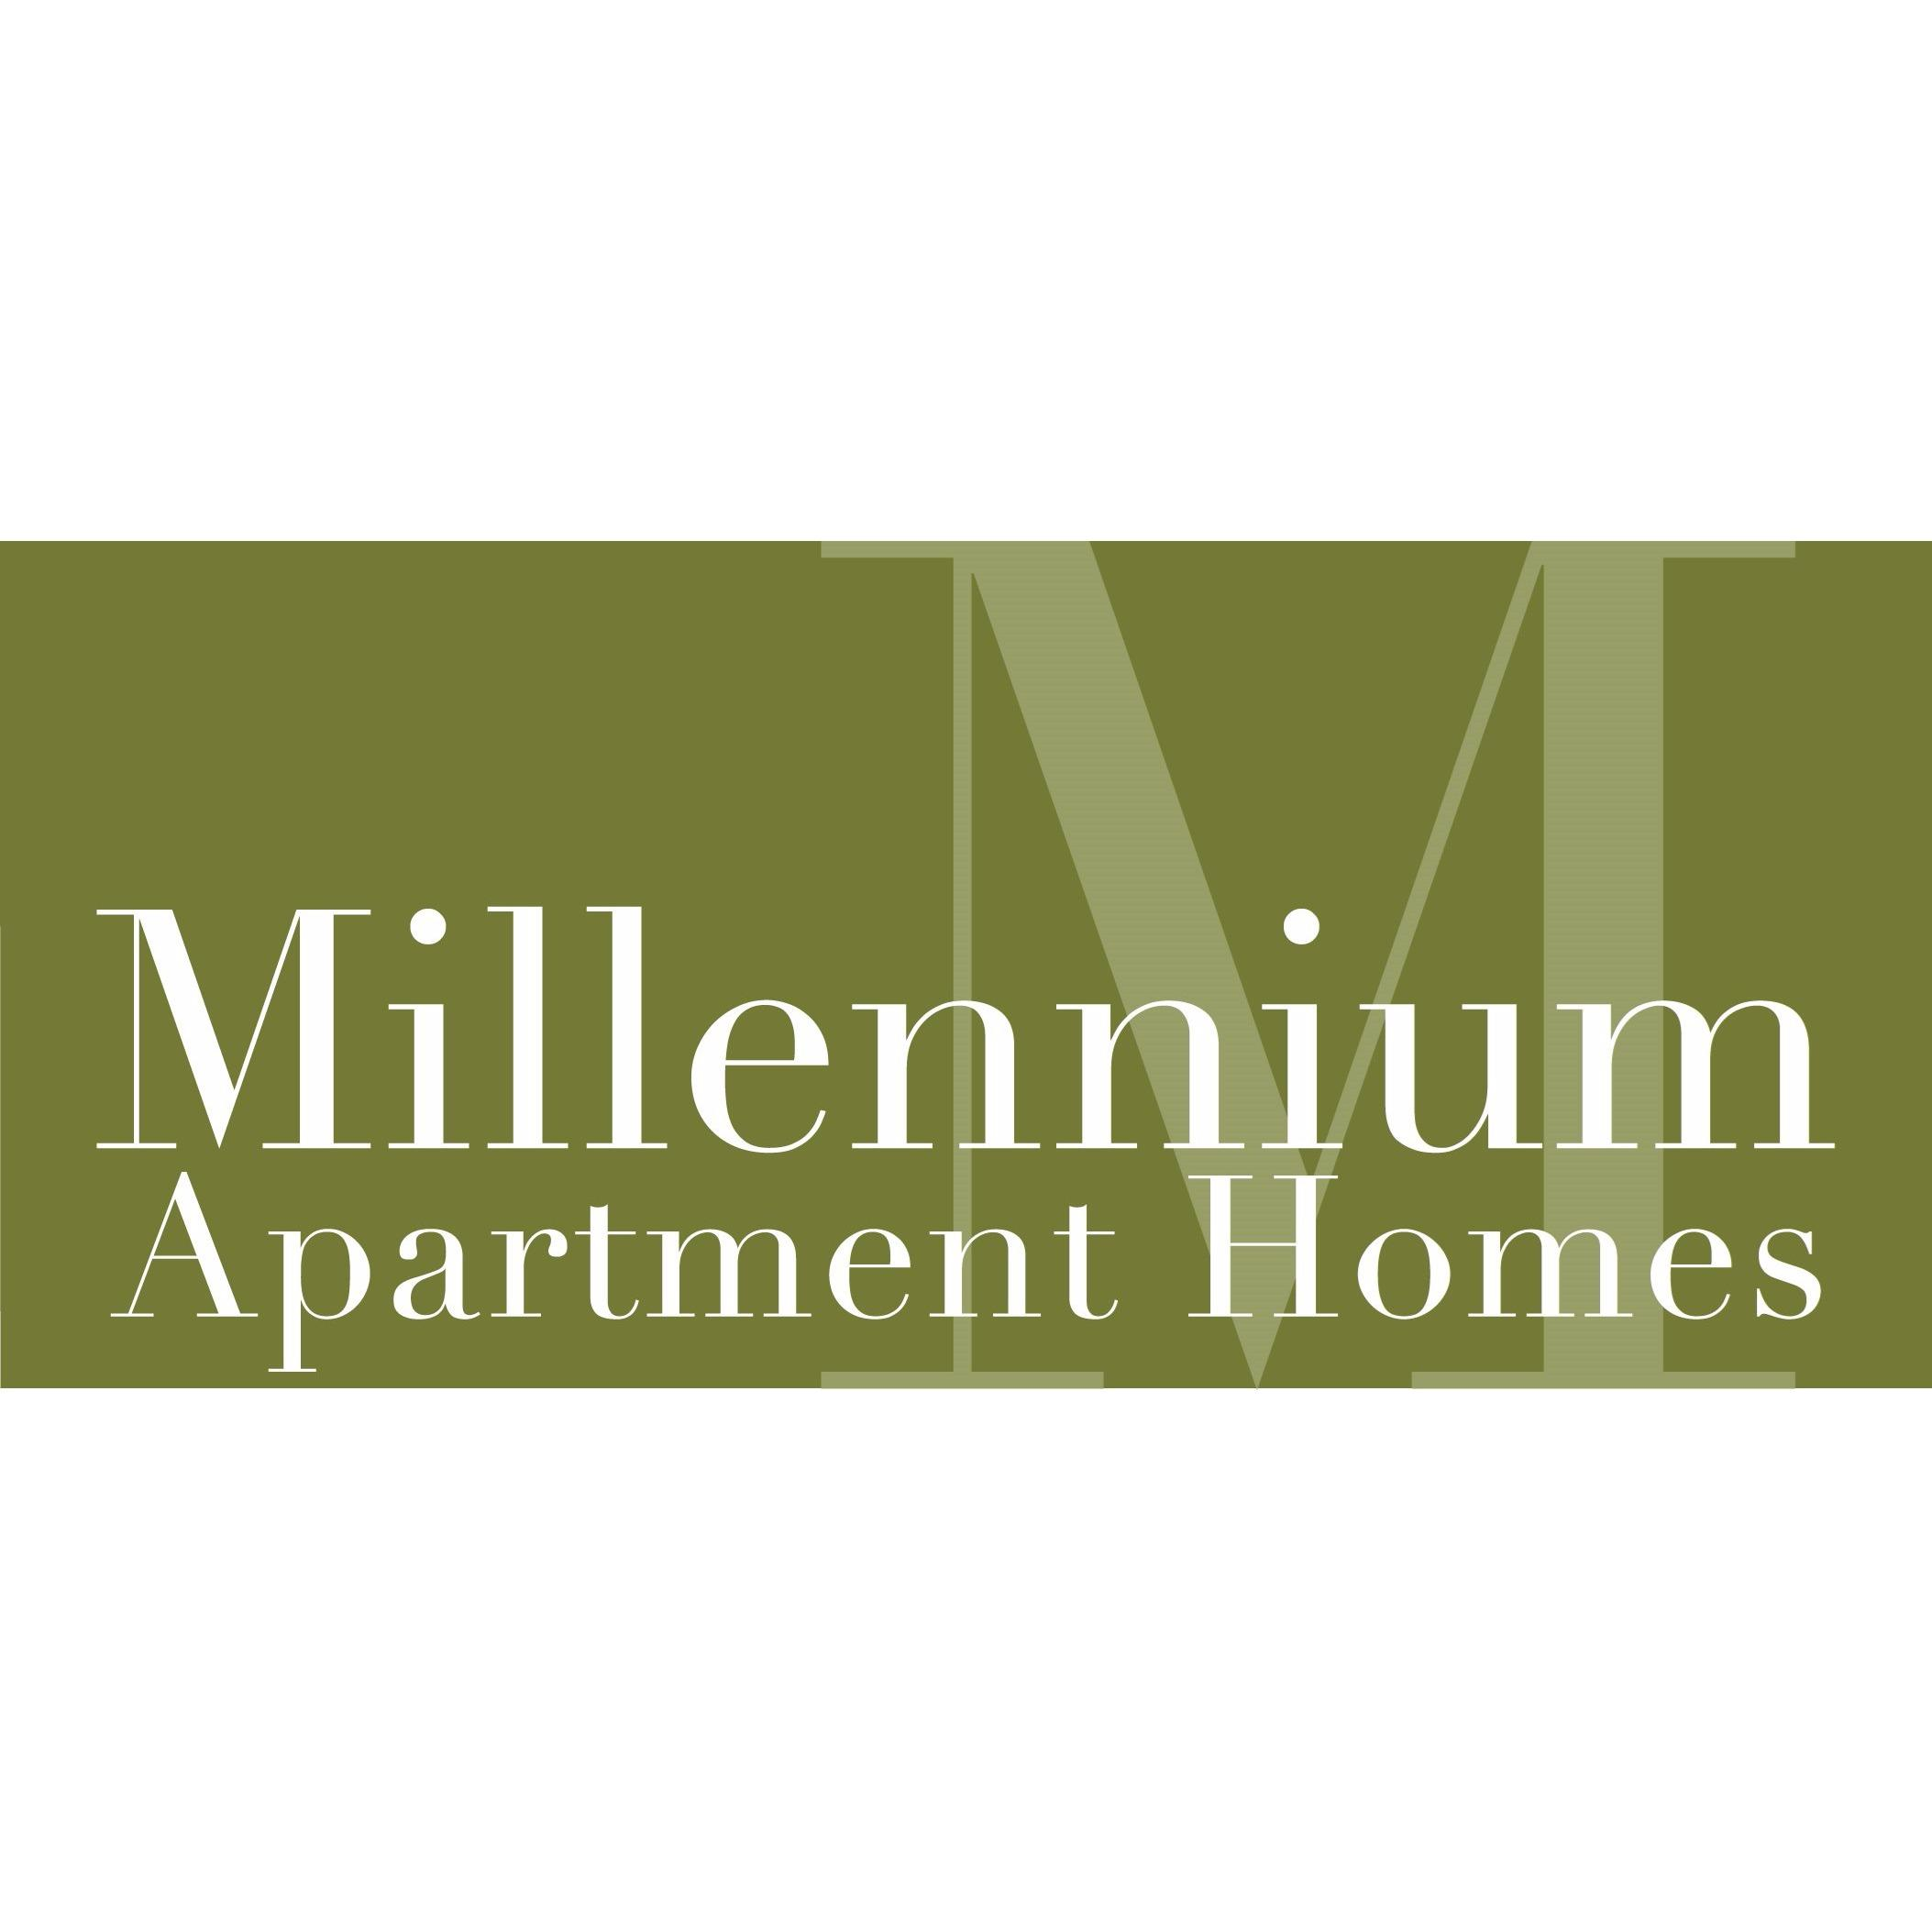 Millennium Apartments: National Realty Management At 155 Ridge Rd, Greenville, SC